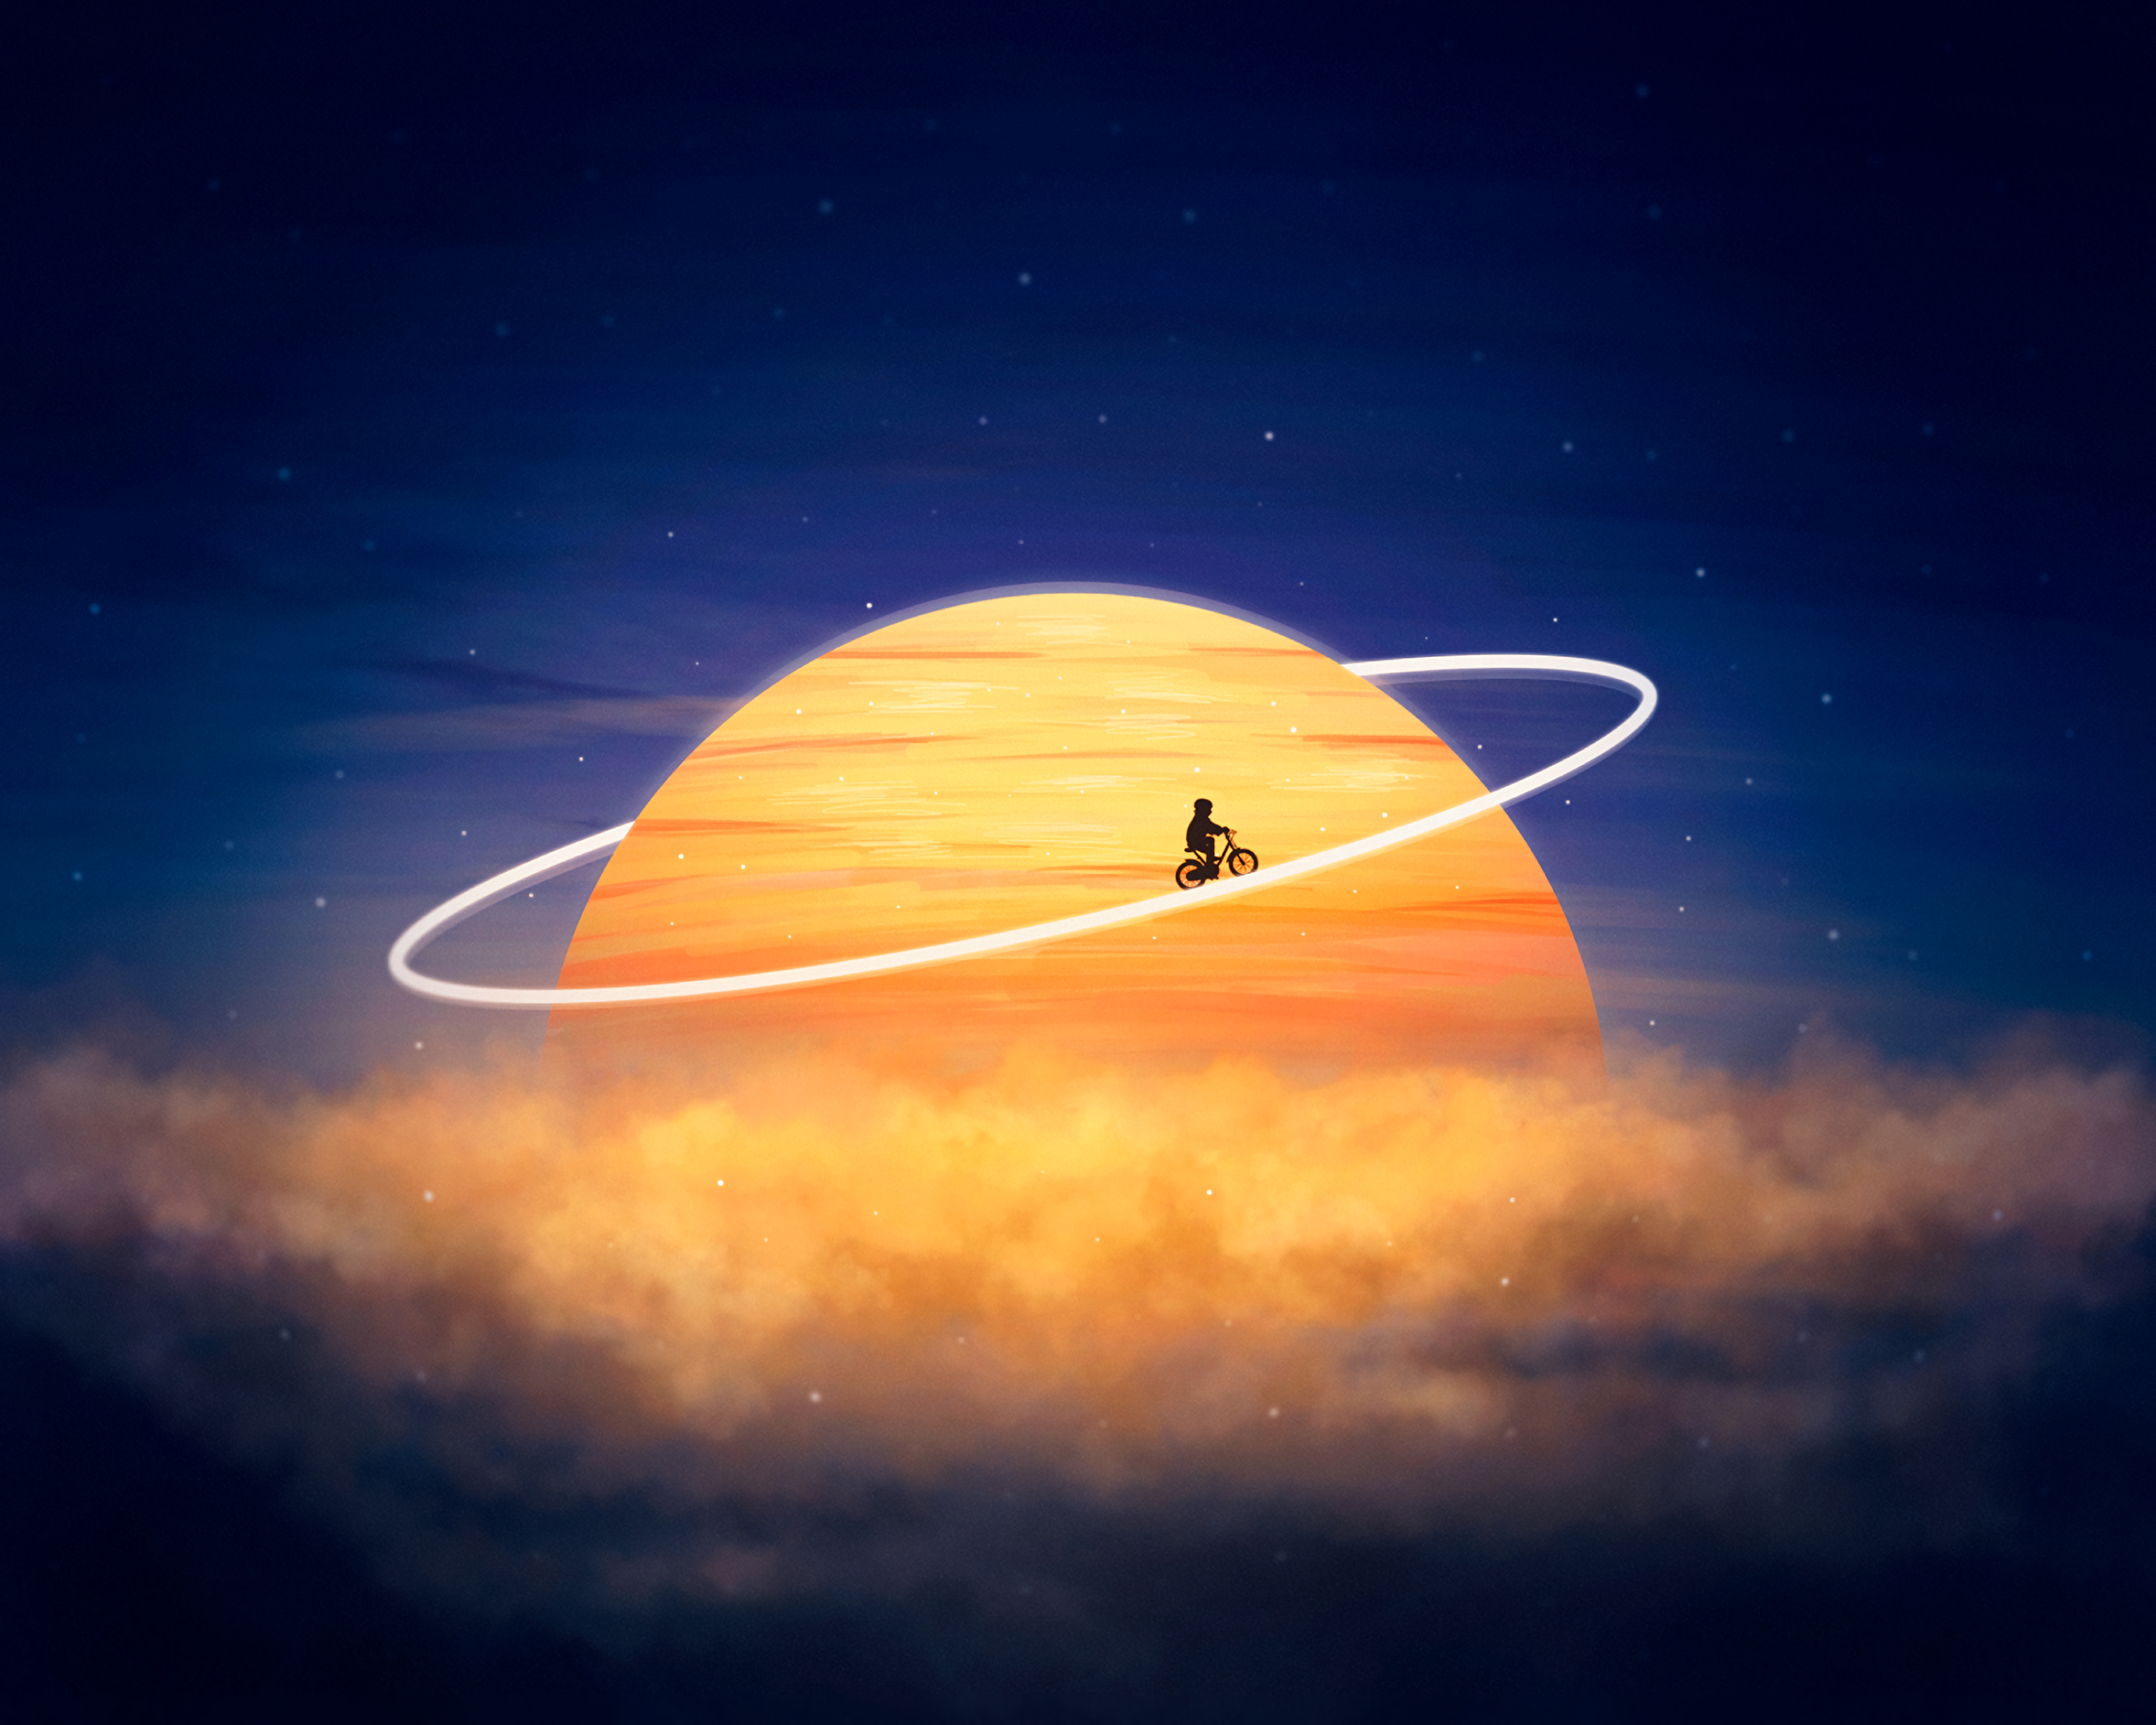 60691 download wallpaper Art, Silhouette, Planet, Orbit, Cyclist, Photoshop, Fantasy screensavers and pictures for free